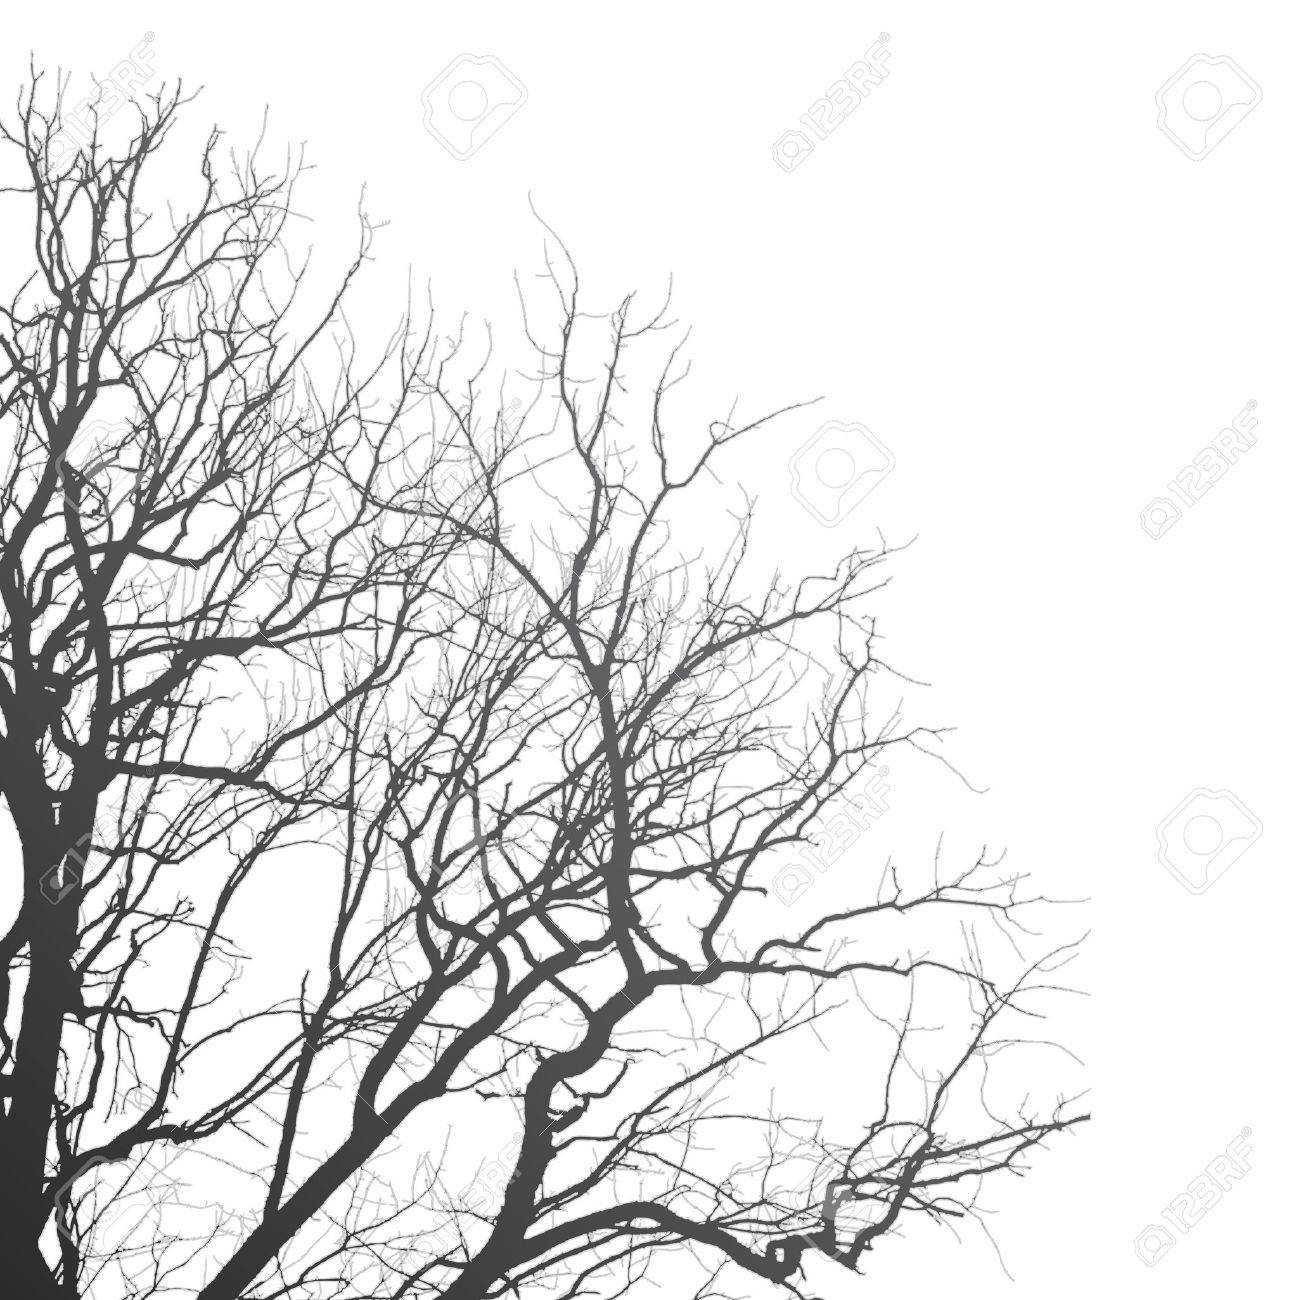 Branches of a tree on a white background, illustration clip-art - 44906900